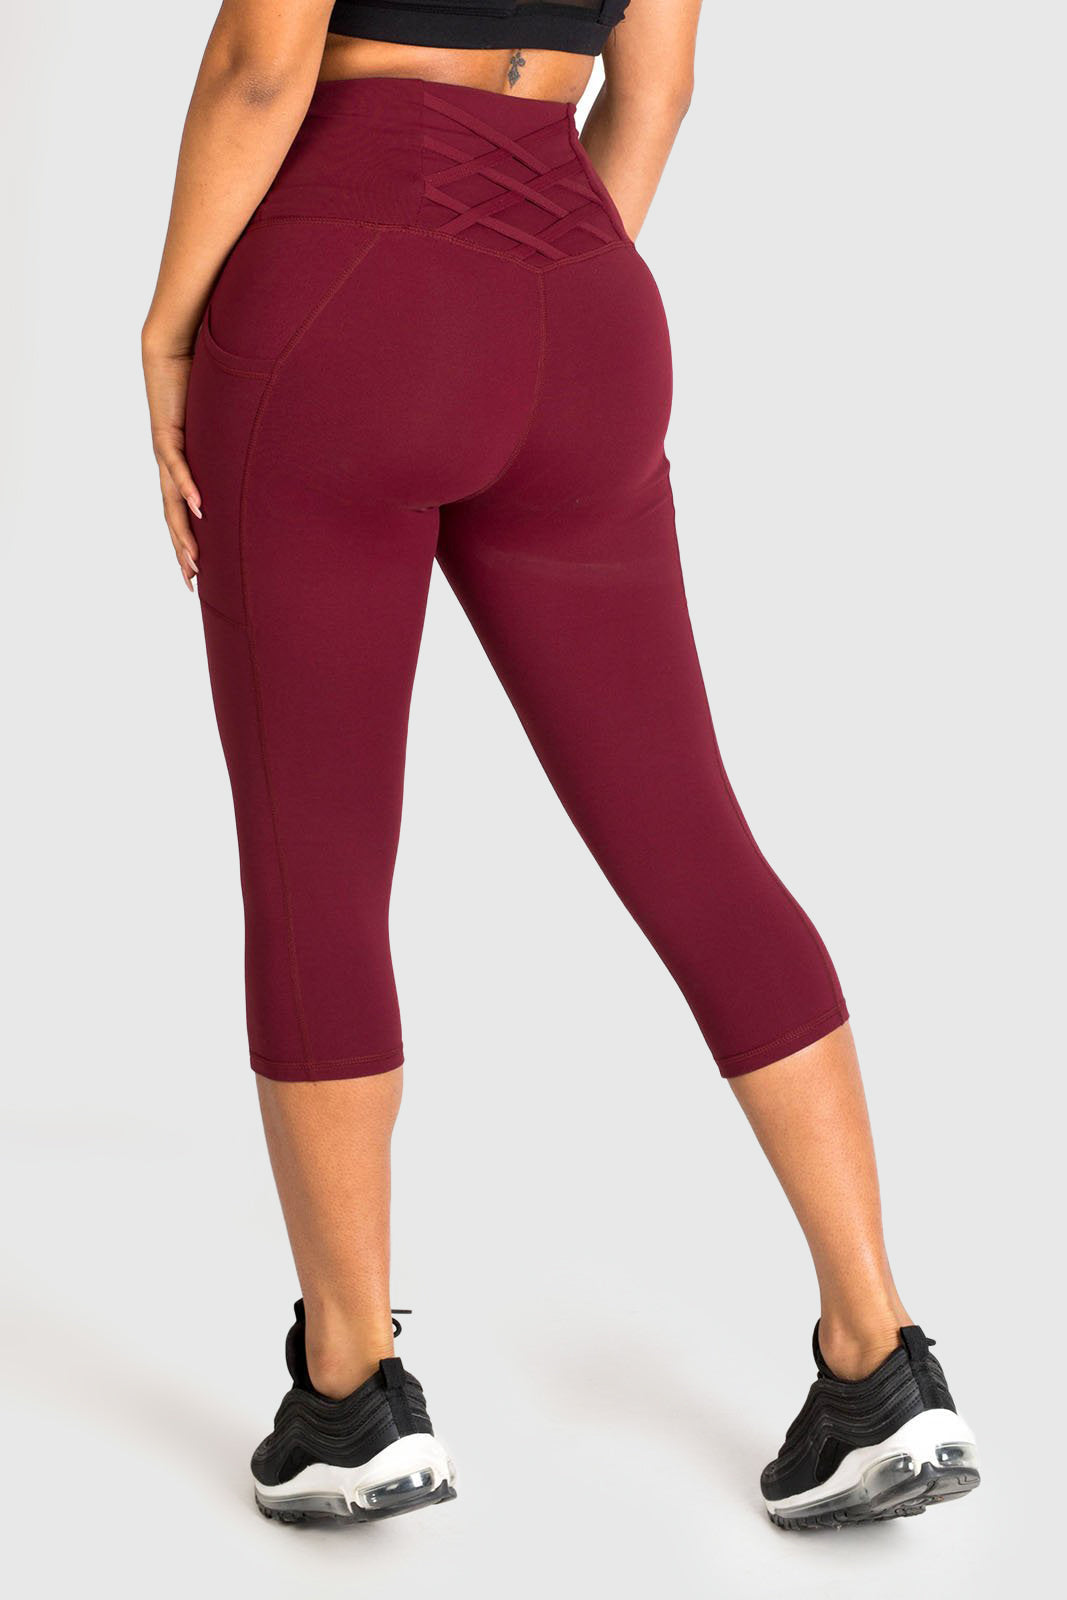 3a367fa53fb89 Strappy 3/4 Highwaisted Leggings - Burgundy – Twotags